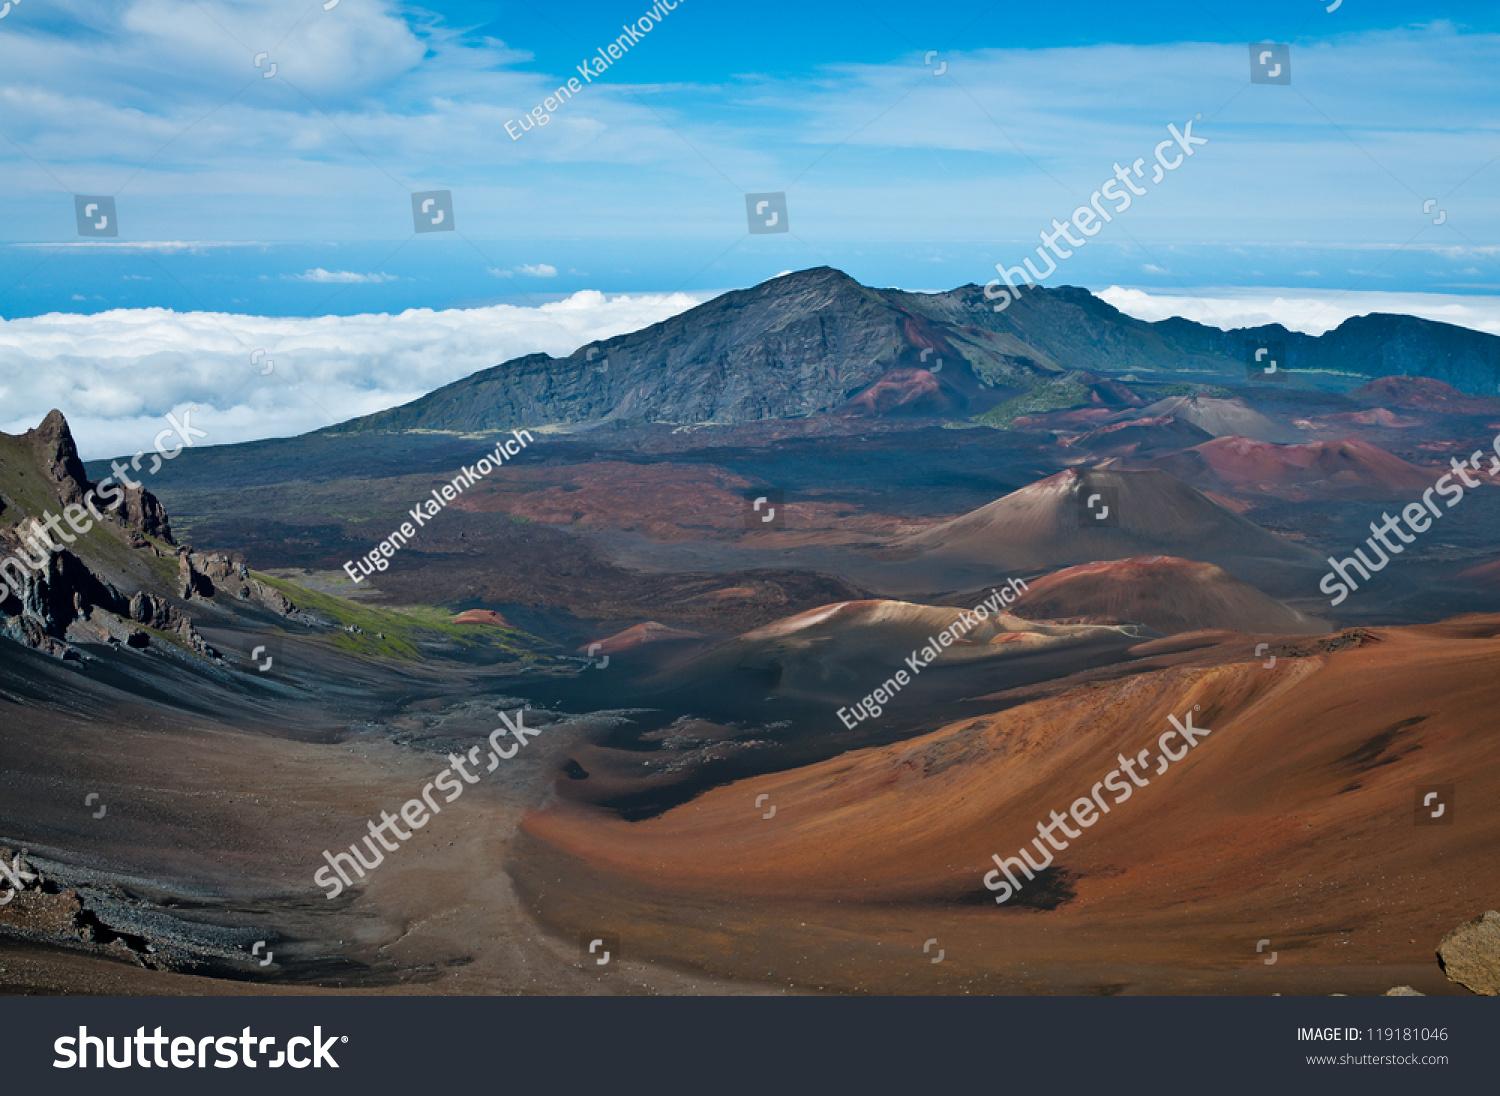 Haleakala Crater Haleakala National Park Hawaii Stock Photo Edit Now 119181046